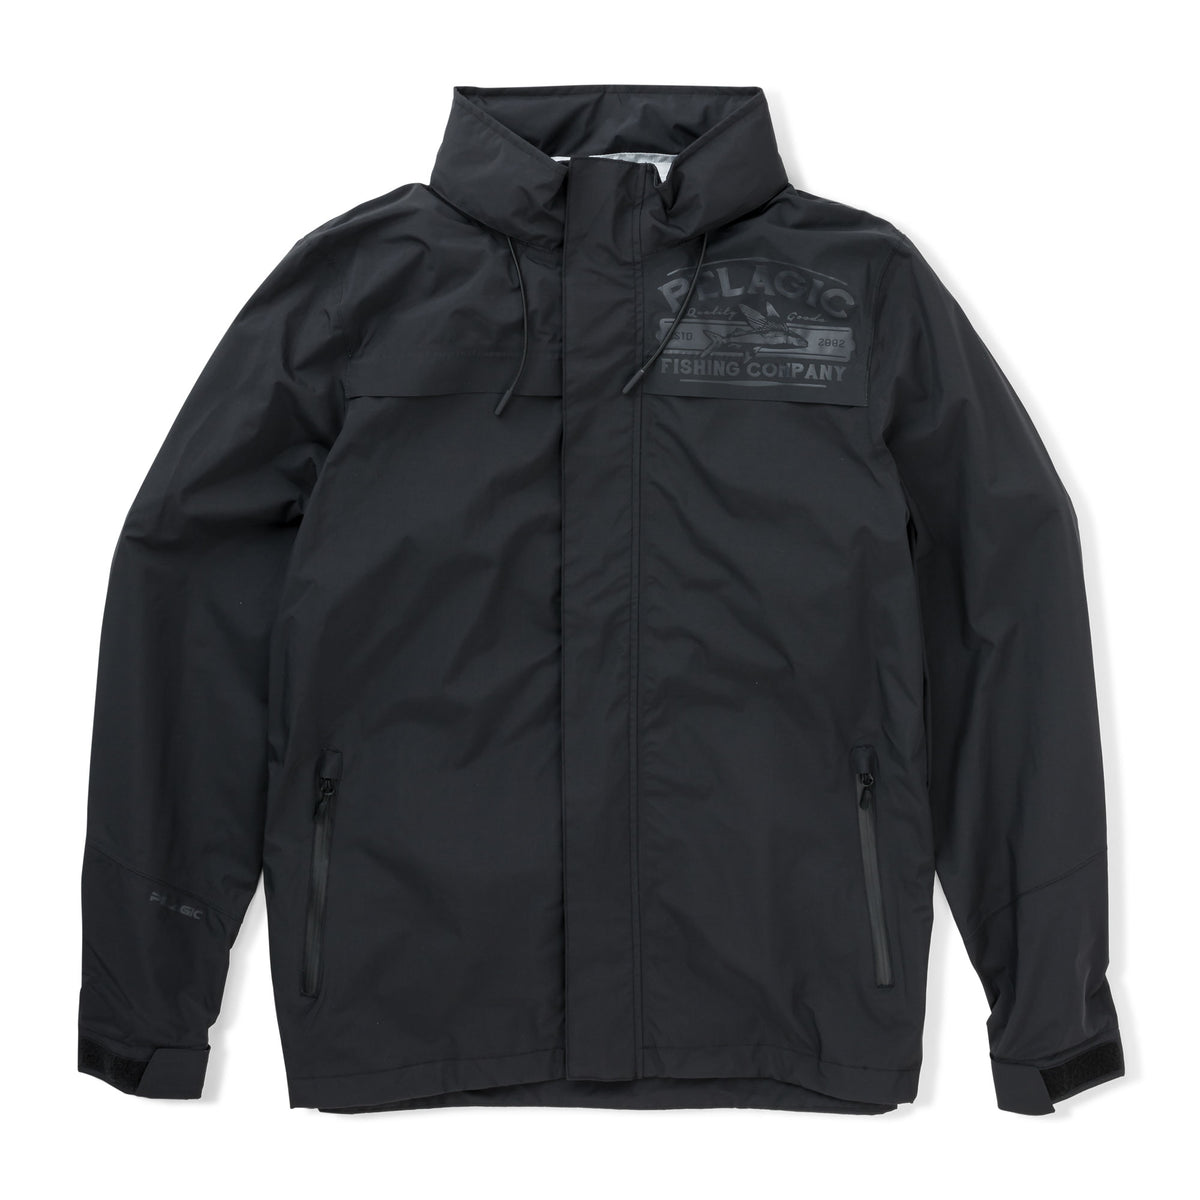 Outrigger Lightweight Jacket Big Image - 1